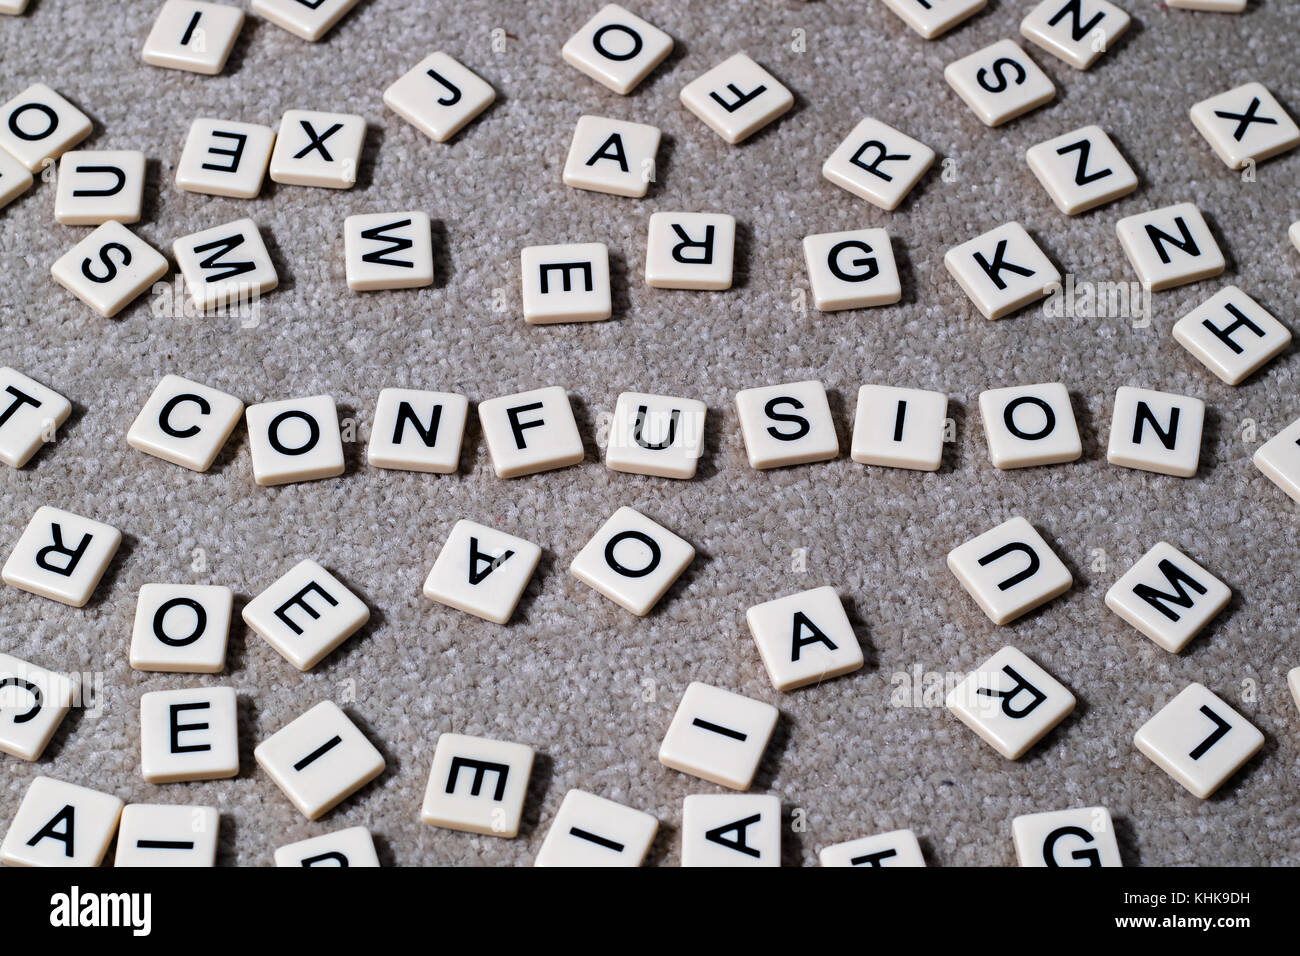 Confusion spelled out on scrabble style lettered tiles amongst a jumble of other letters. - Stock Image